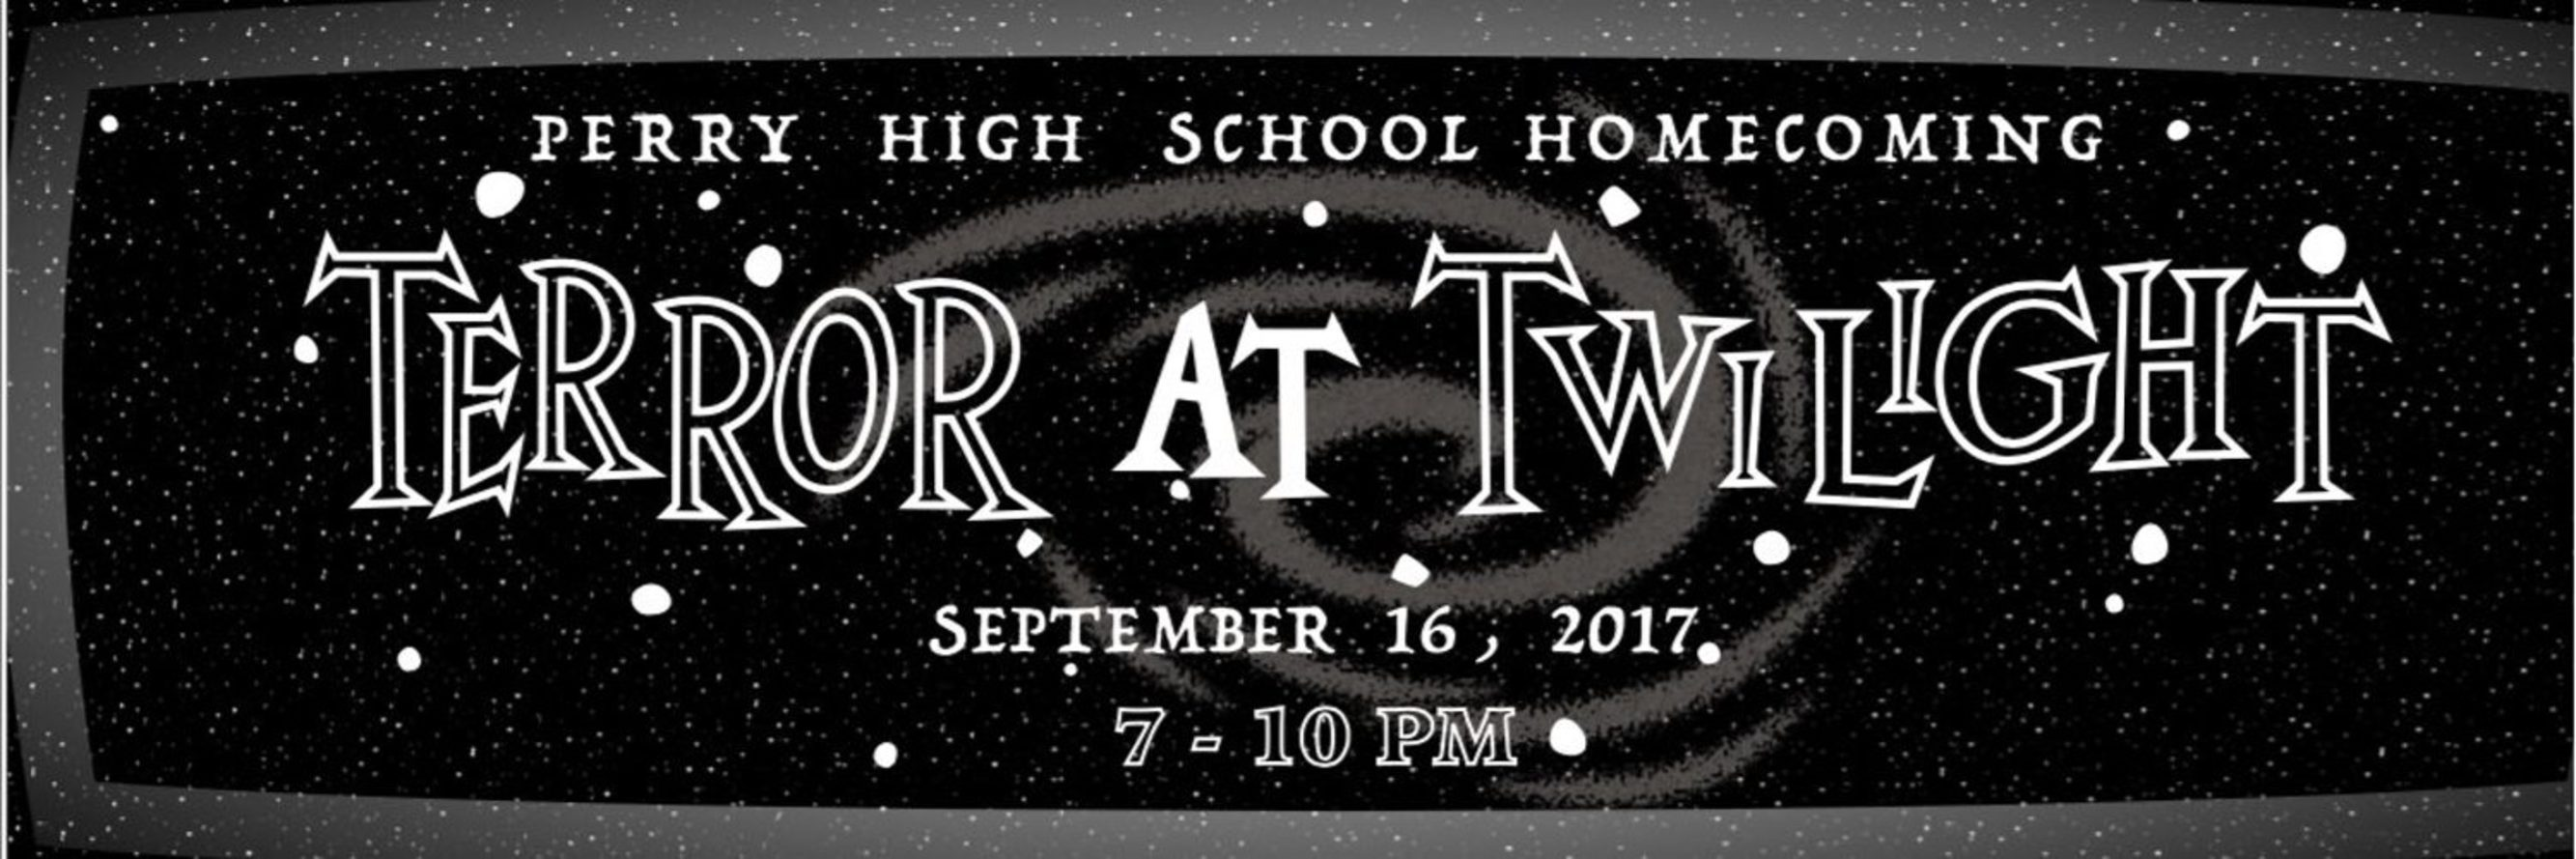 Terror at Twilight is on September 16, 2017 in the big gym from 7 PM to 10 PM.